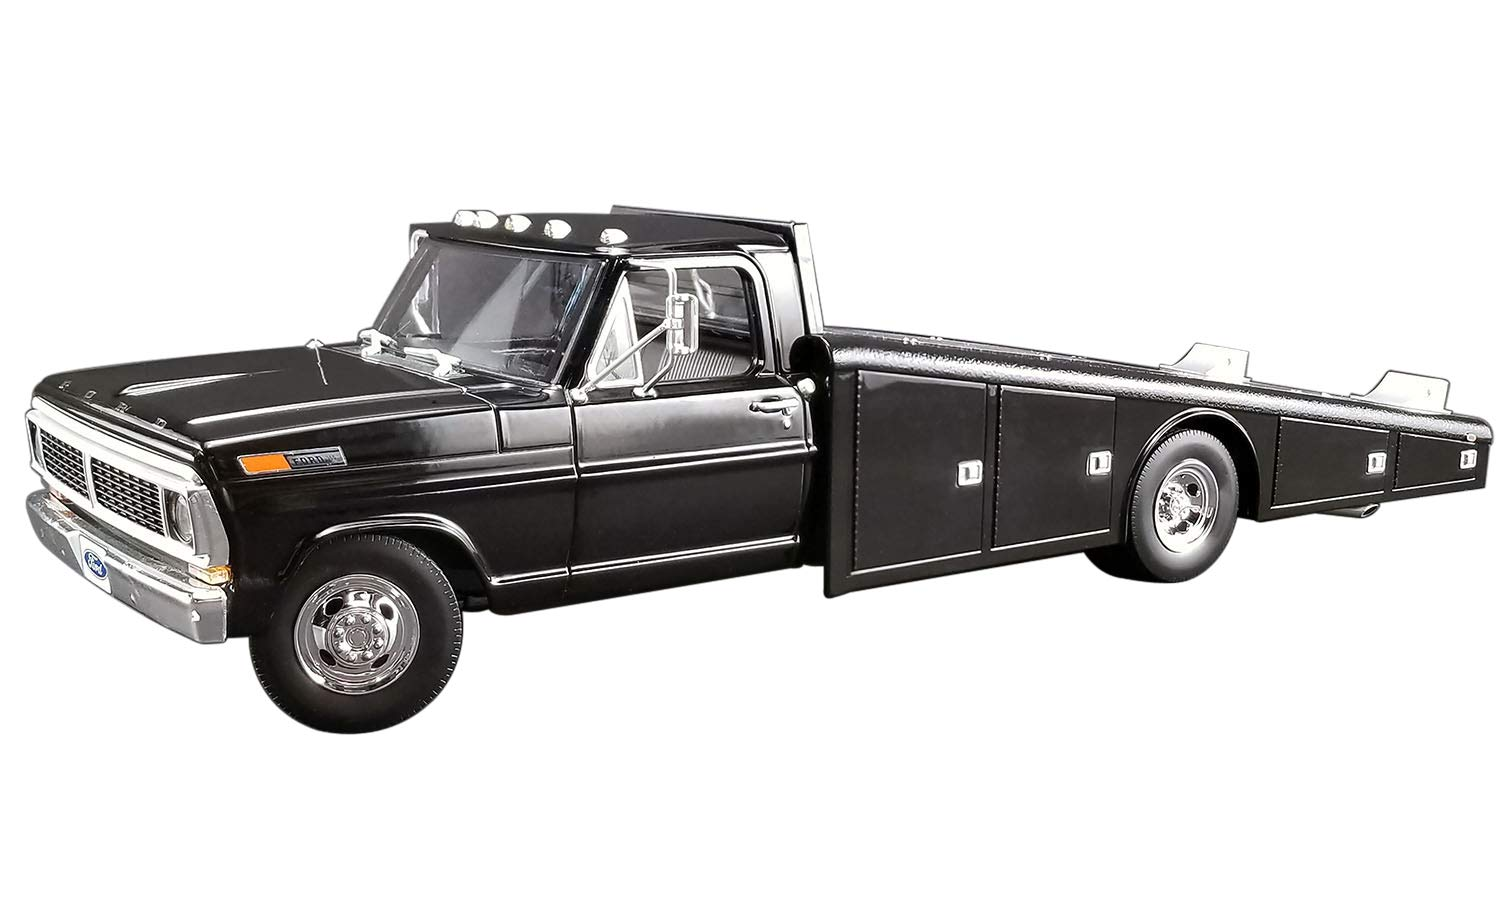 1970 Ford F-350 Ramp Truck Black Limited Edition to 1,148 Pieces Worldwide 1/18 Diecast Model Car by Acme A1801400